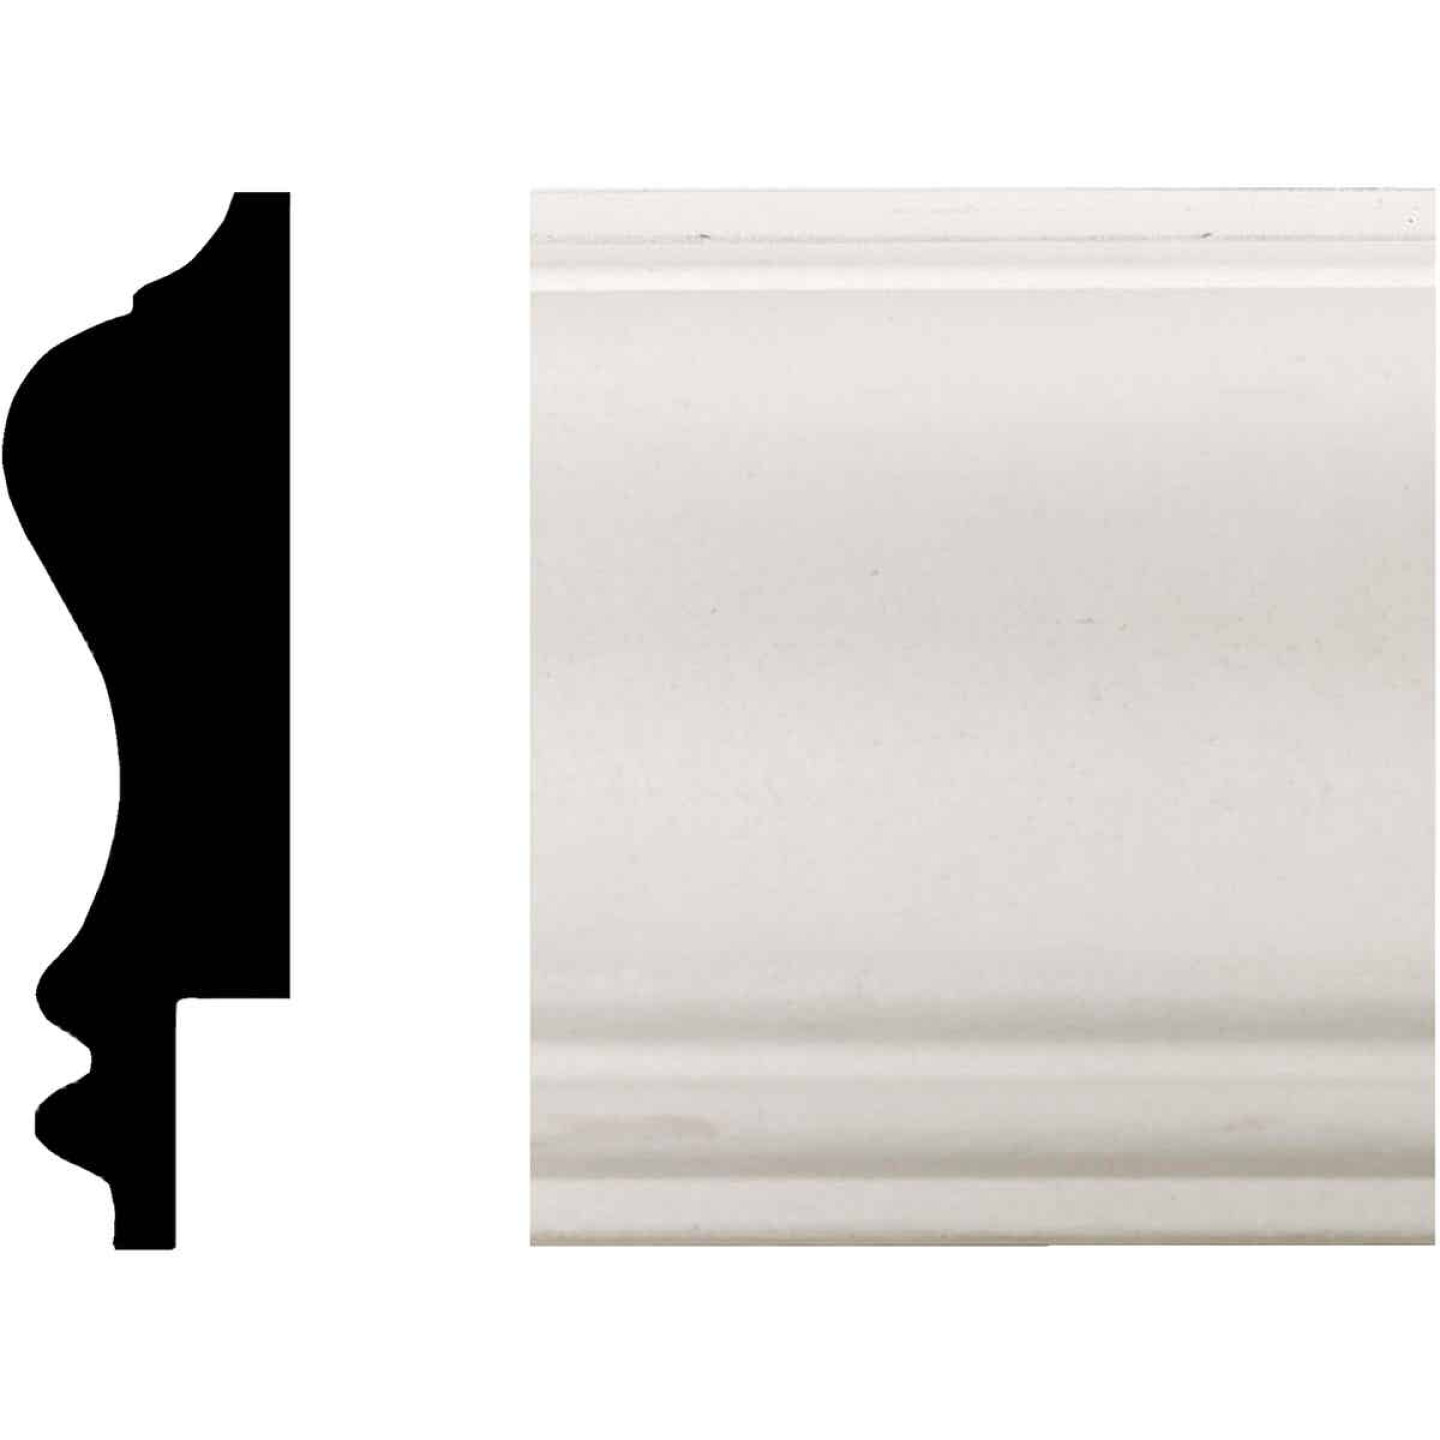 House of Fara 3/4 In. W. x 2-3/4 In. H. x 8 Ft. L. White MDF Wainscot Chair Rail Molding Image 1